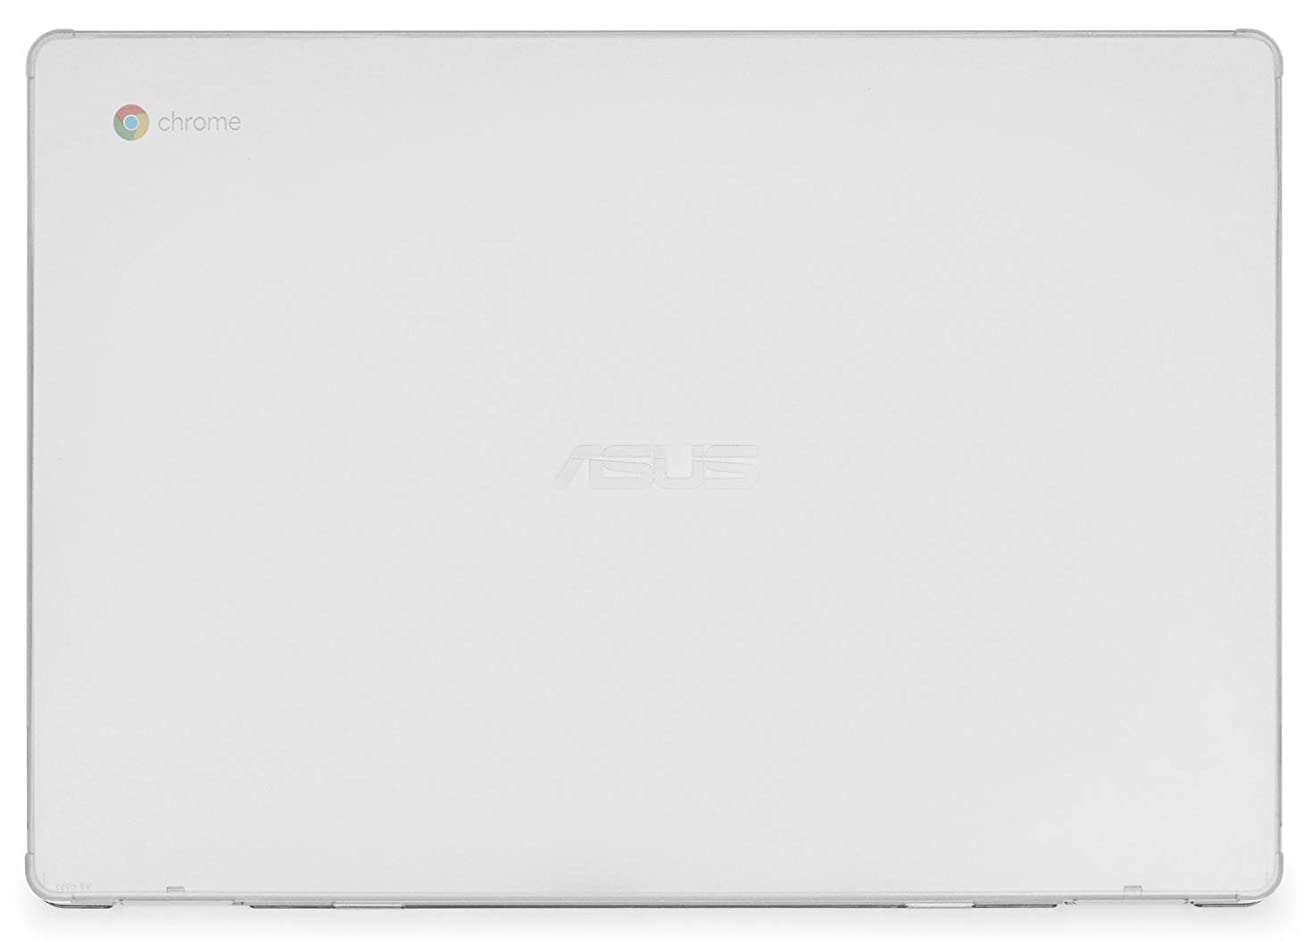 mCover Hard Shell Case for 15.6-inch ASUS Chromebook C523NA Series Laptop - ASUS C523 Clear